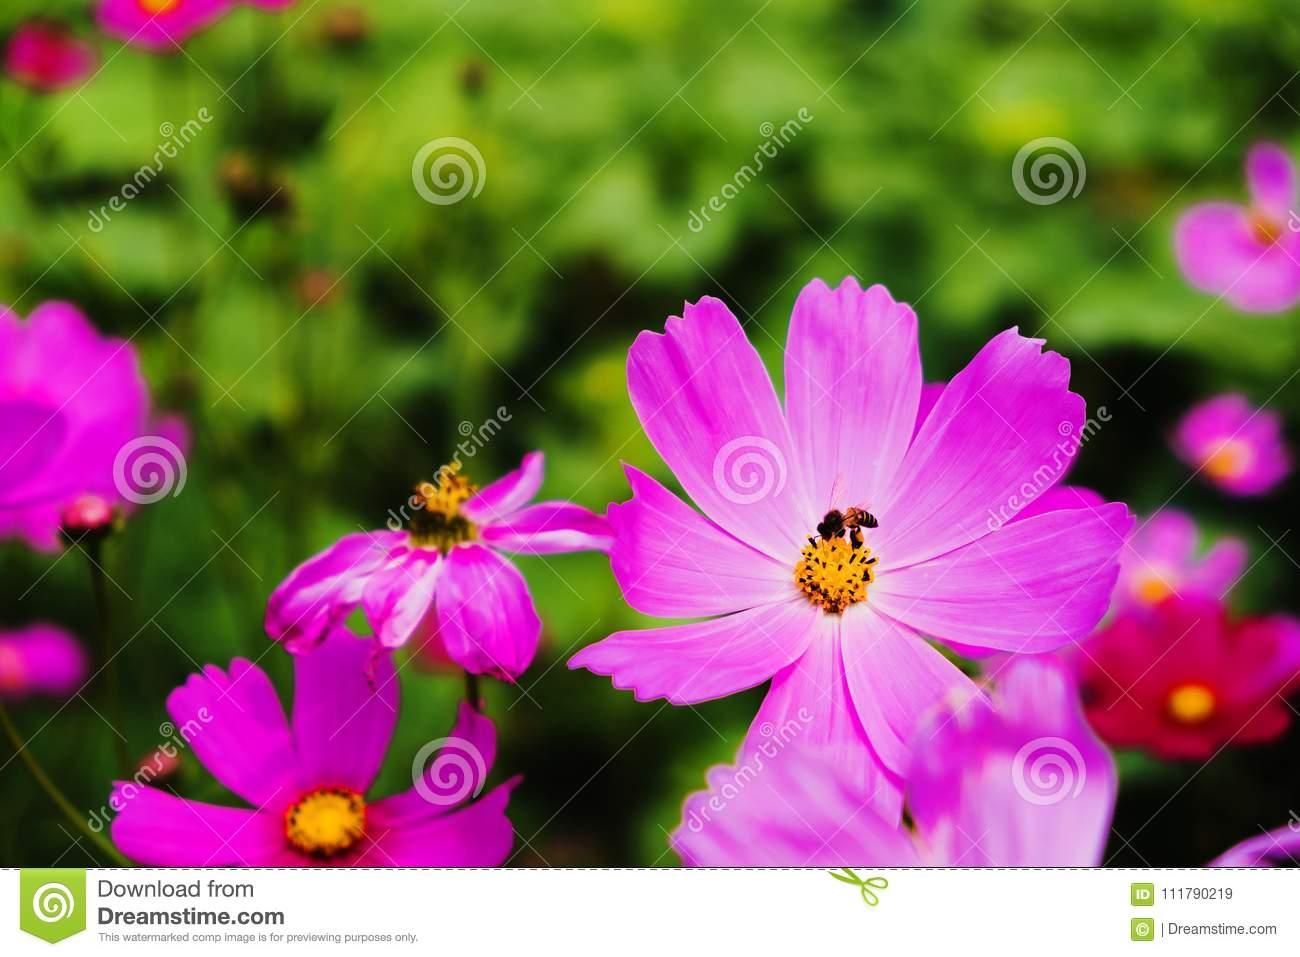 Cosmos flower and bee in thailand stock image image of cosmos royalty free stock photo izmirmasajfo Gallery